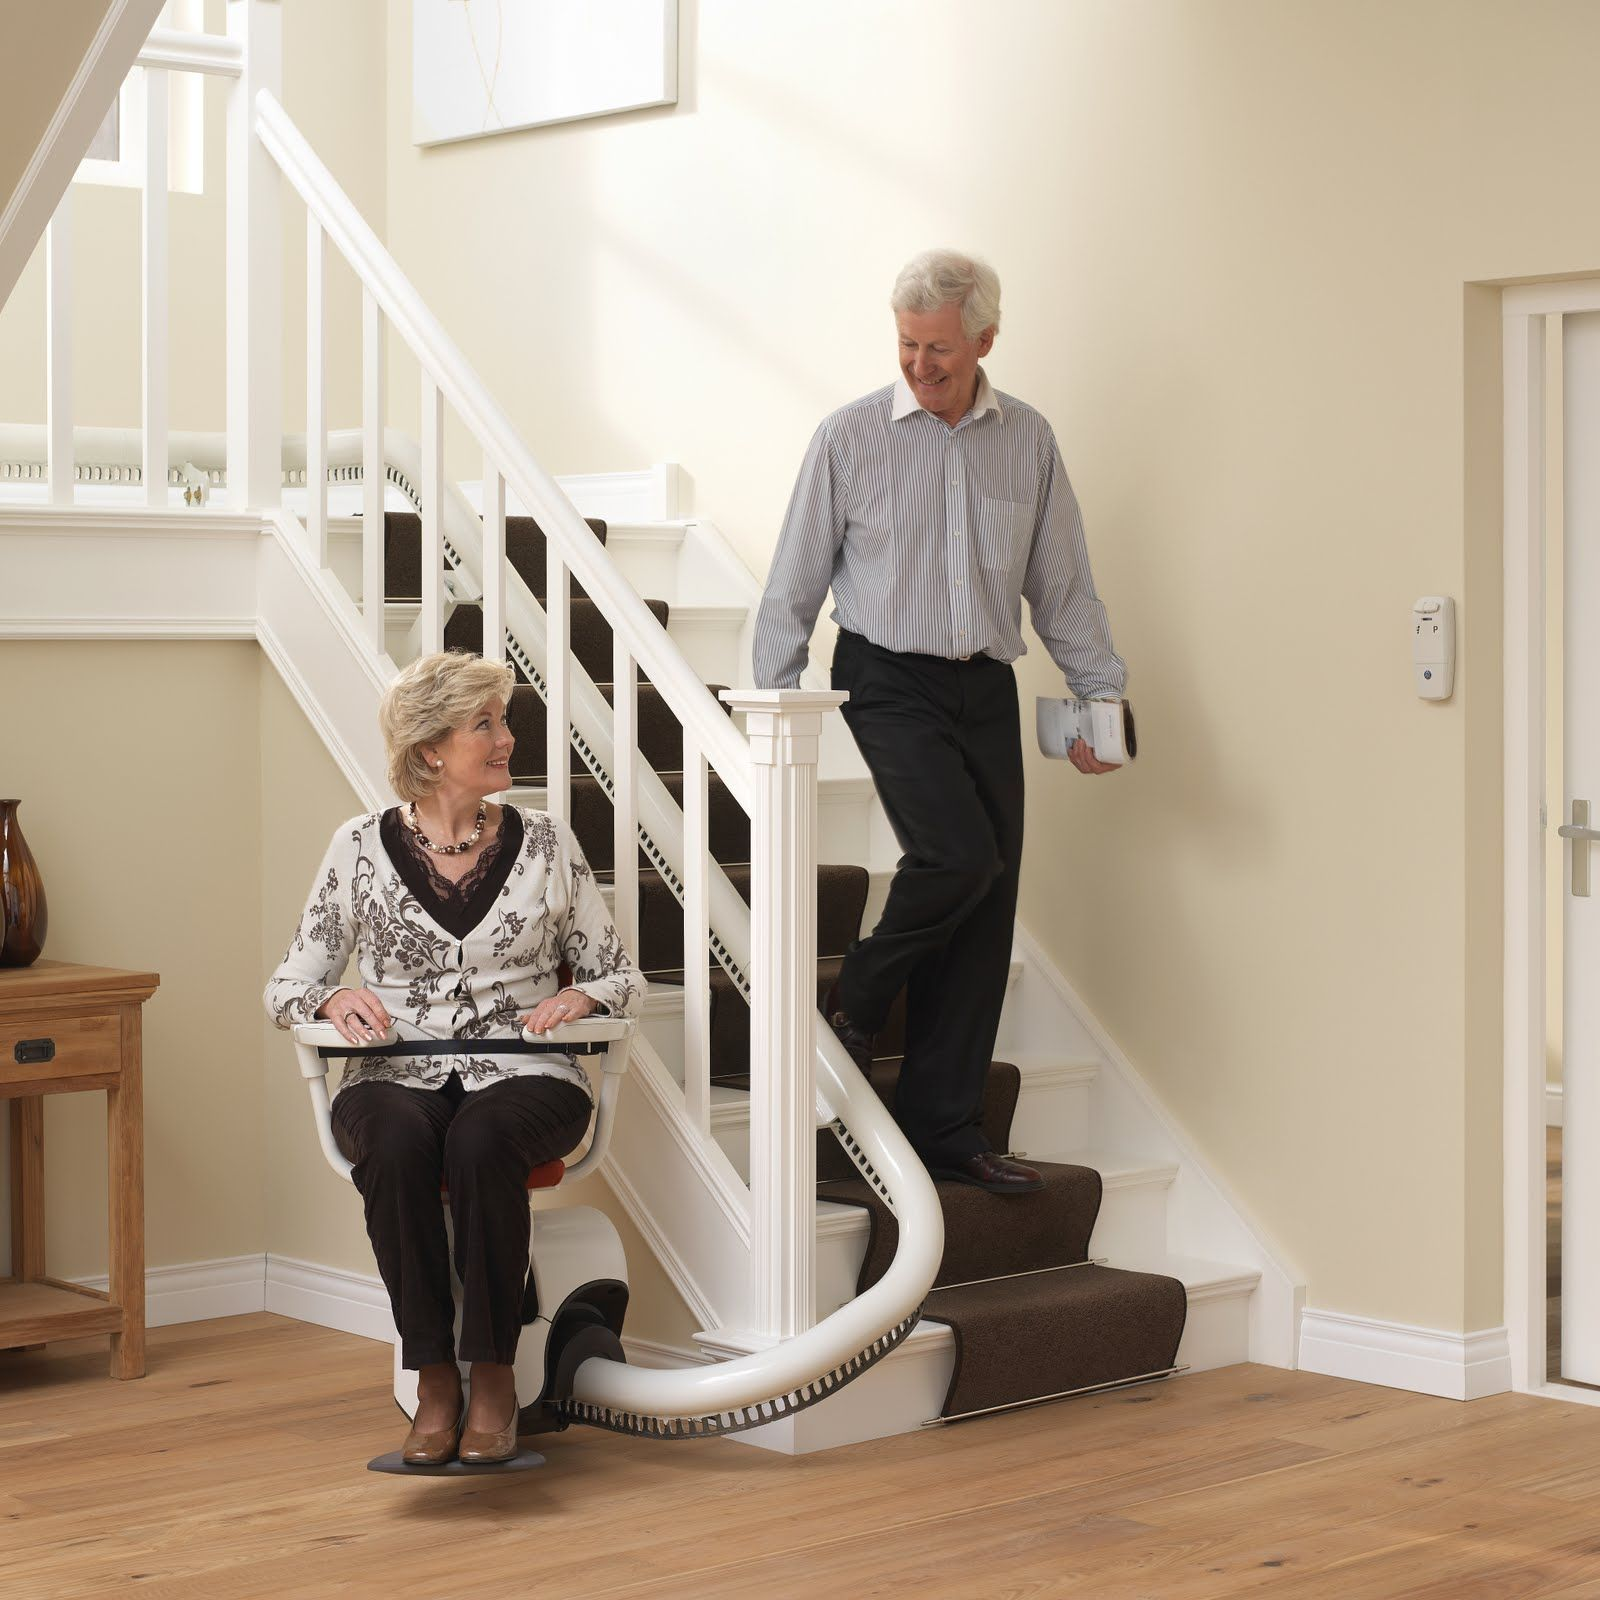 The Flow 2 Can Tackle Even The Narrowest Stairs And The Chair Folds Up To Take Just 330mm Stair Lifts Stair Lift Stairs